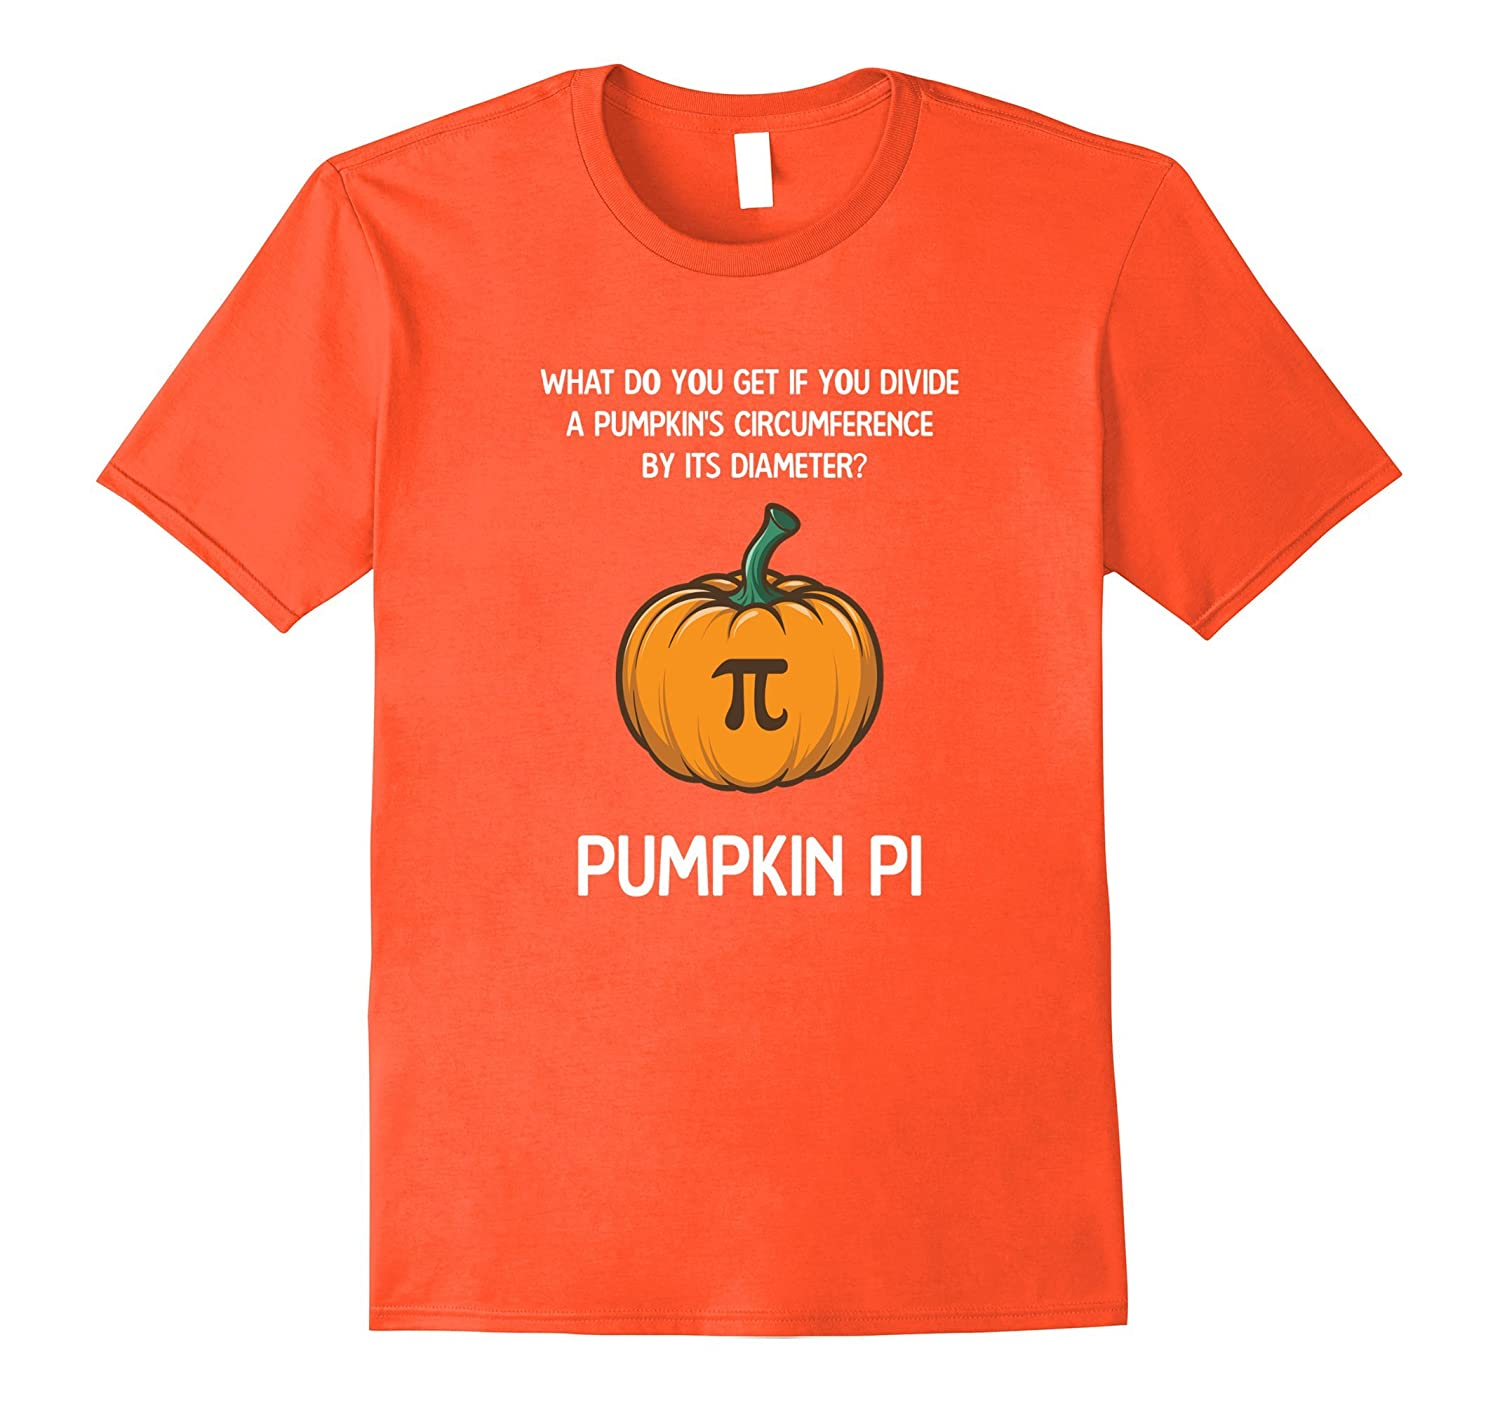 860cd4d9 Pie day tshirt Math Pun T-Shirt: Pumpkin Pi-ANZ ⋆ Anztshirt